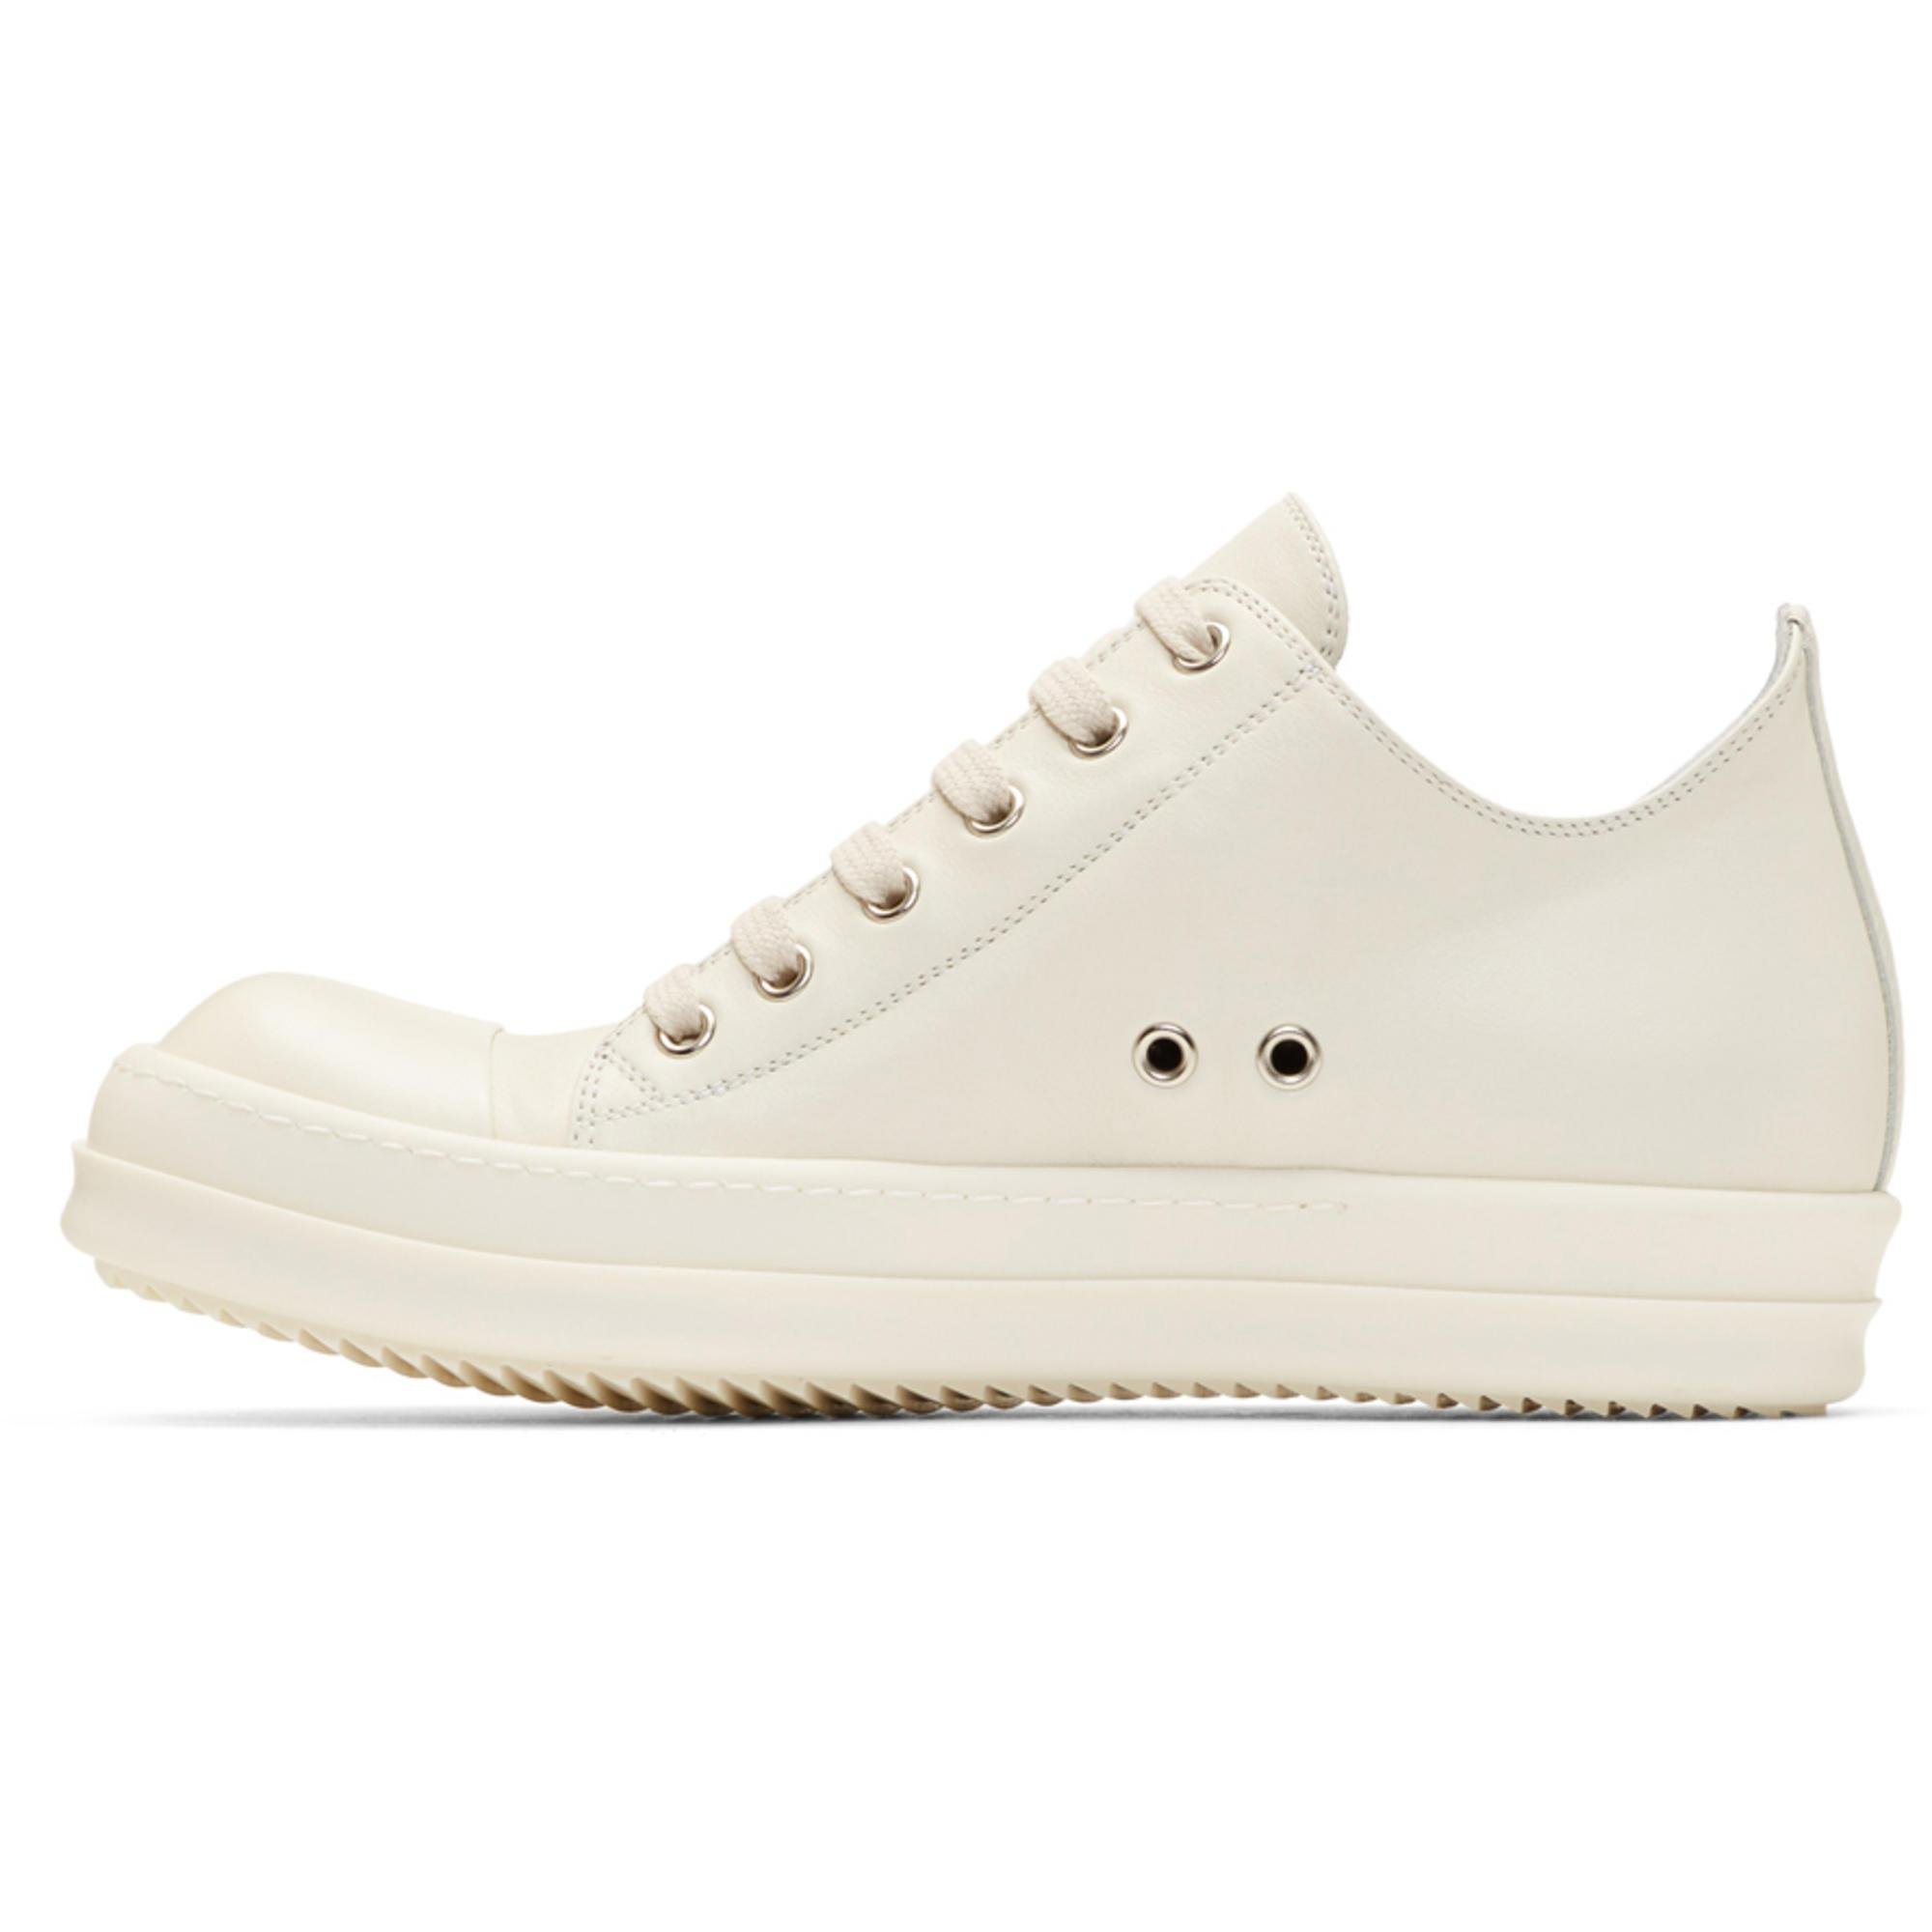 Off-White Leather Low Sneakers Rick Owens juzjB